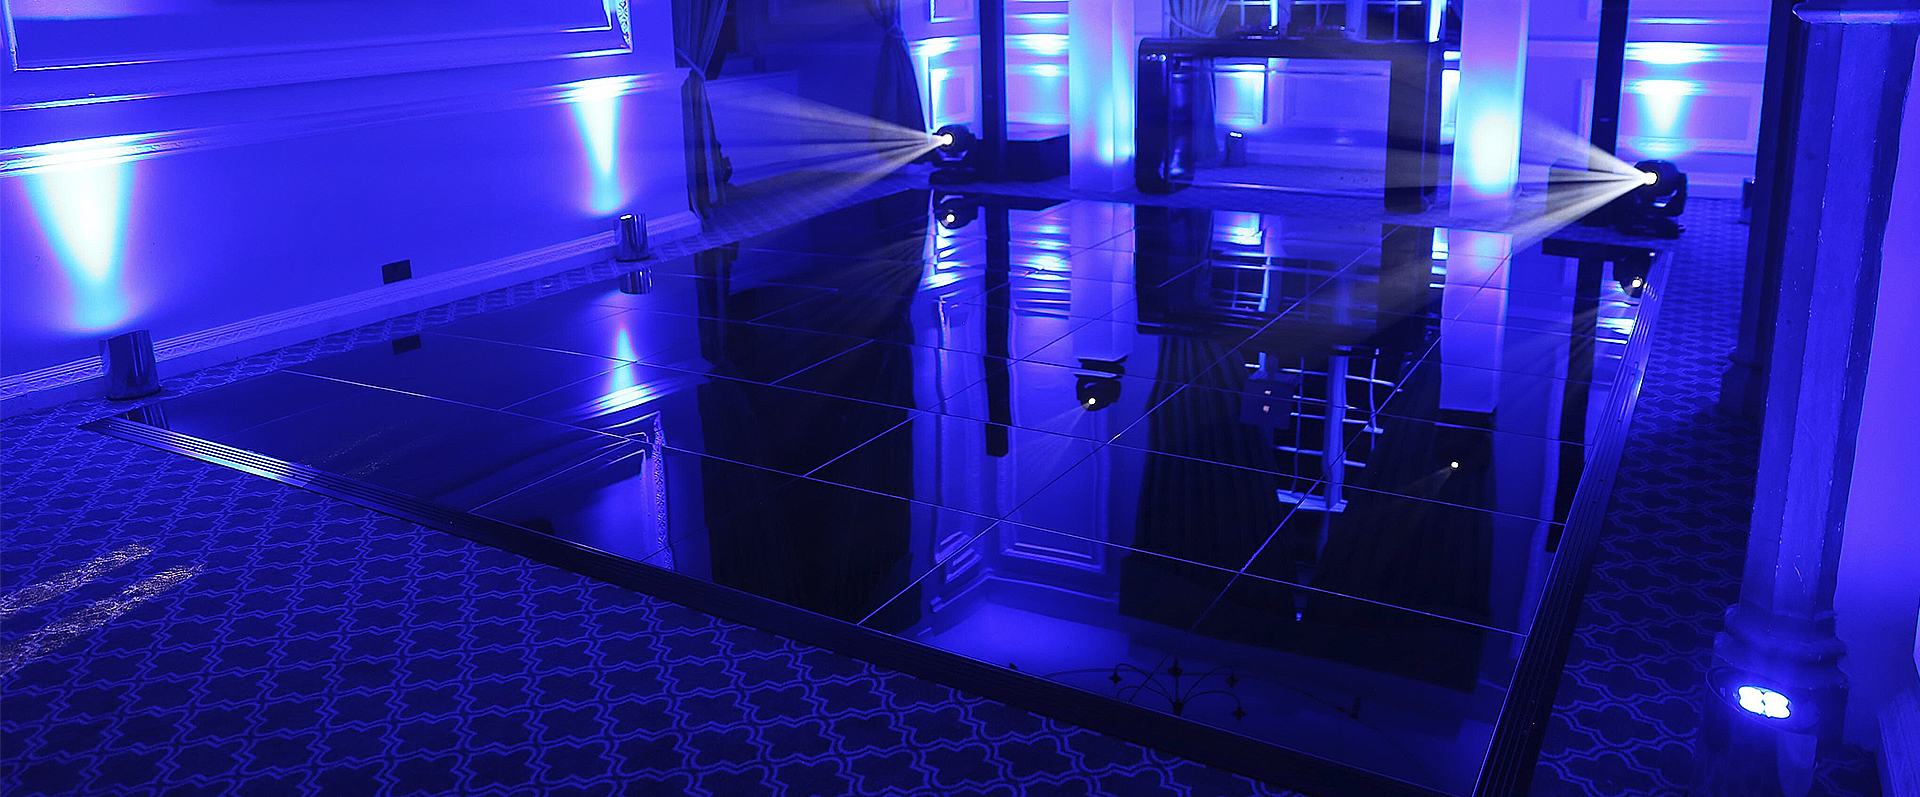 Nightlok is a black acrylic dance floor recommended for pubs and disco clubs